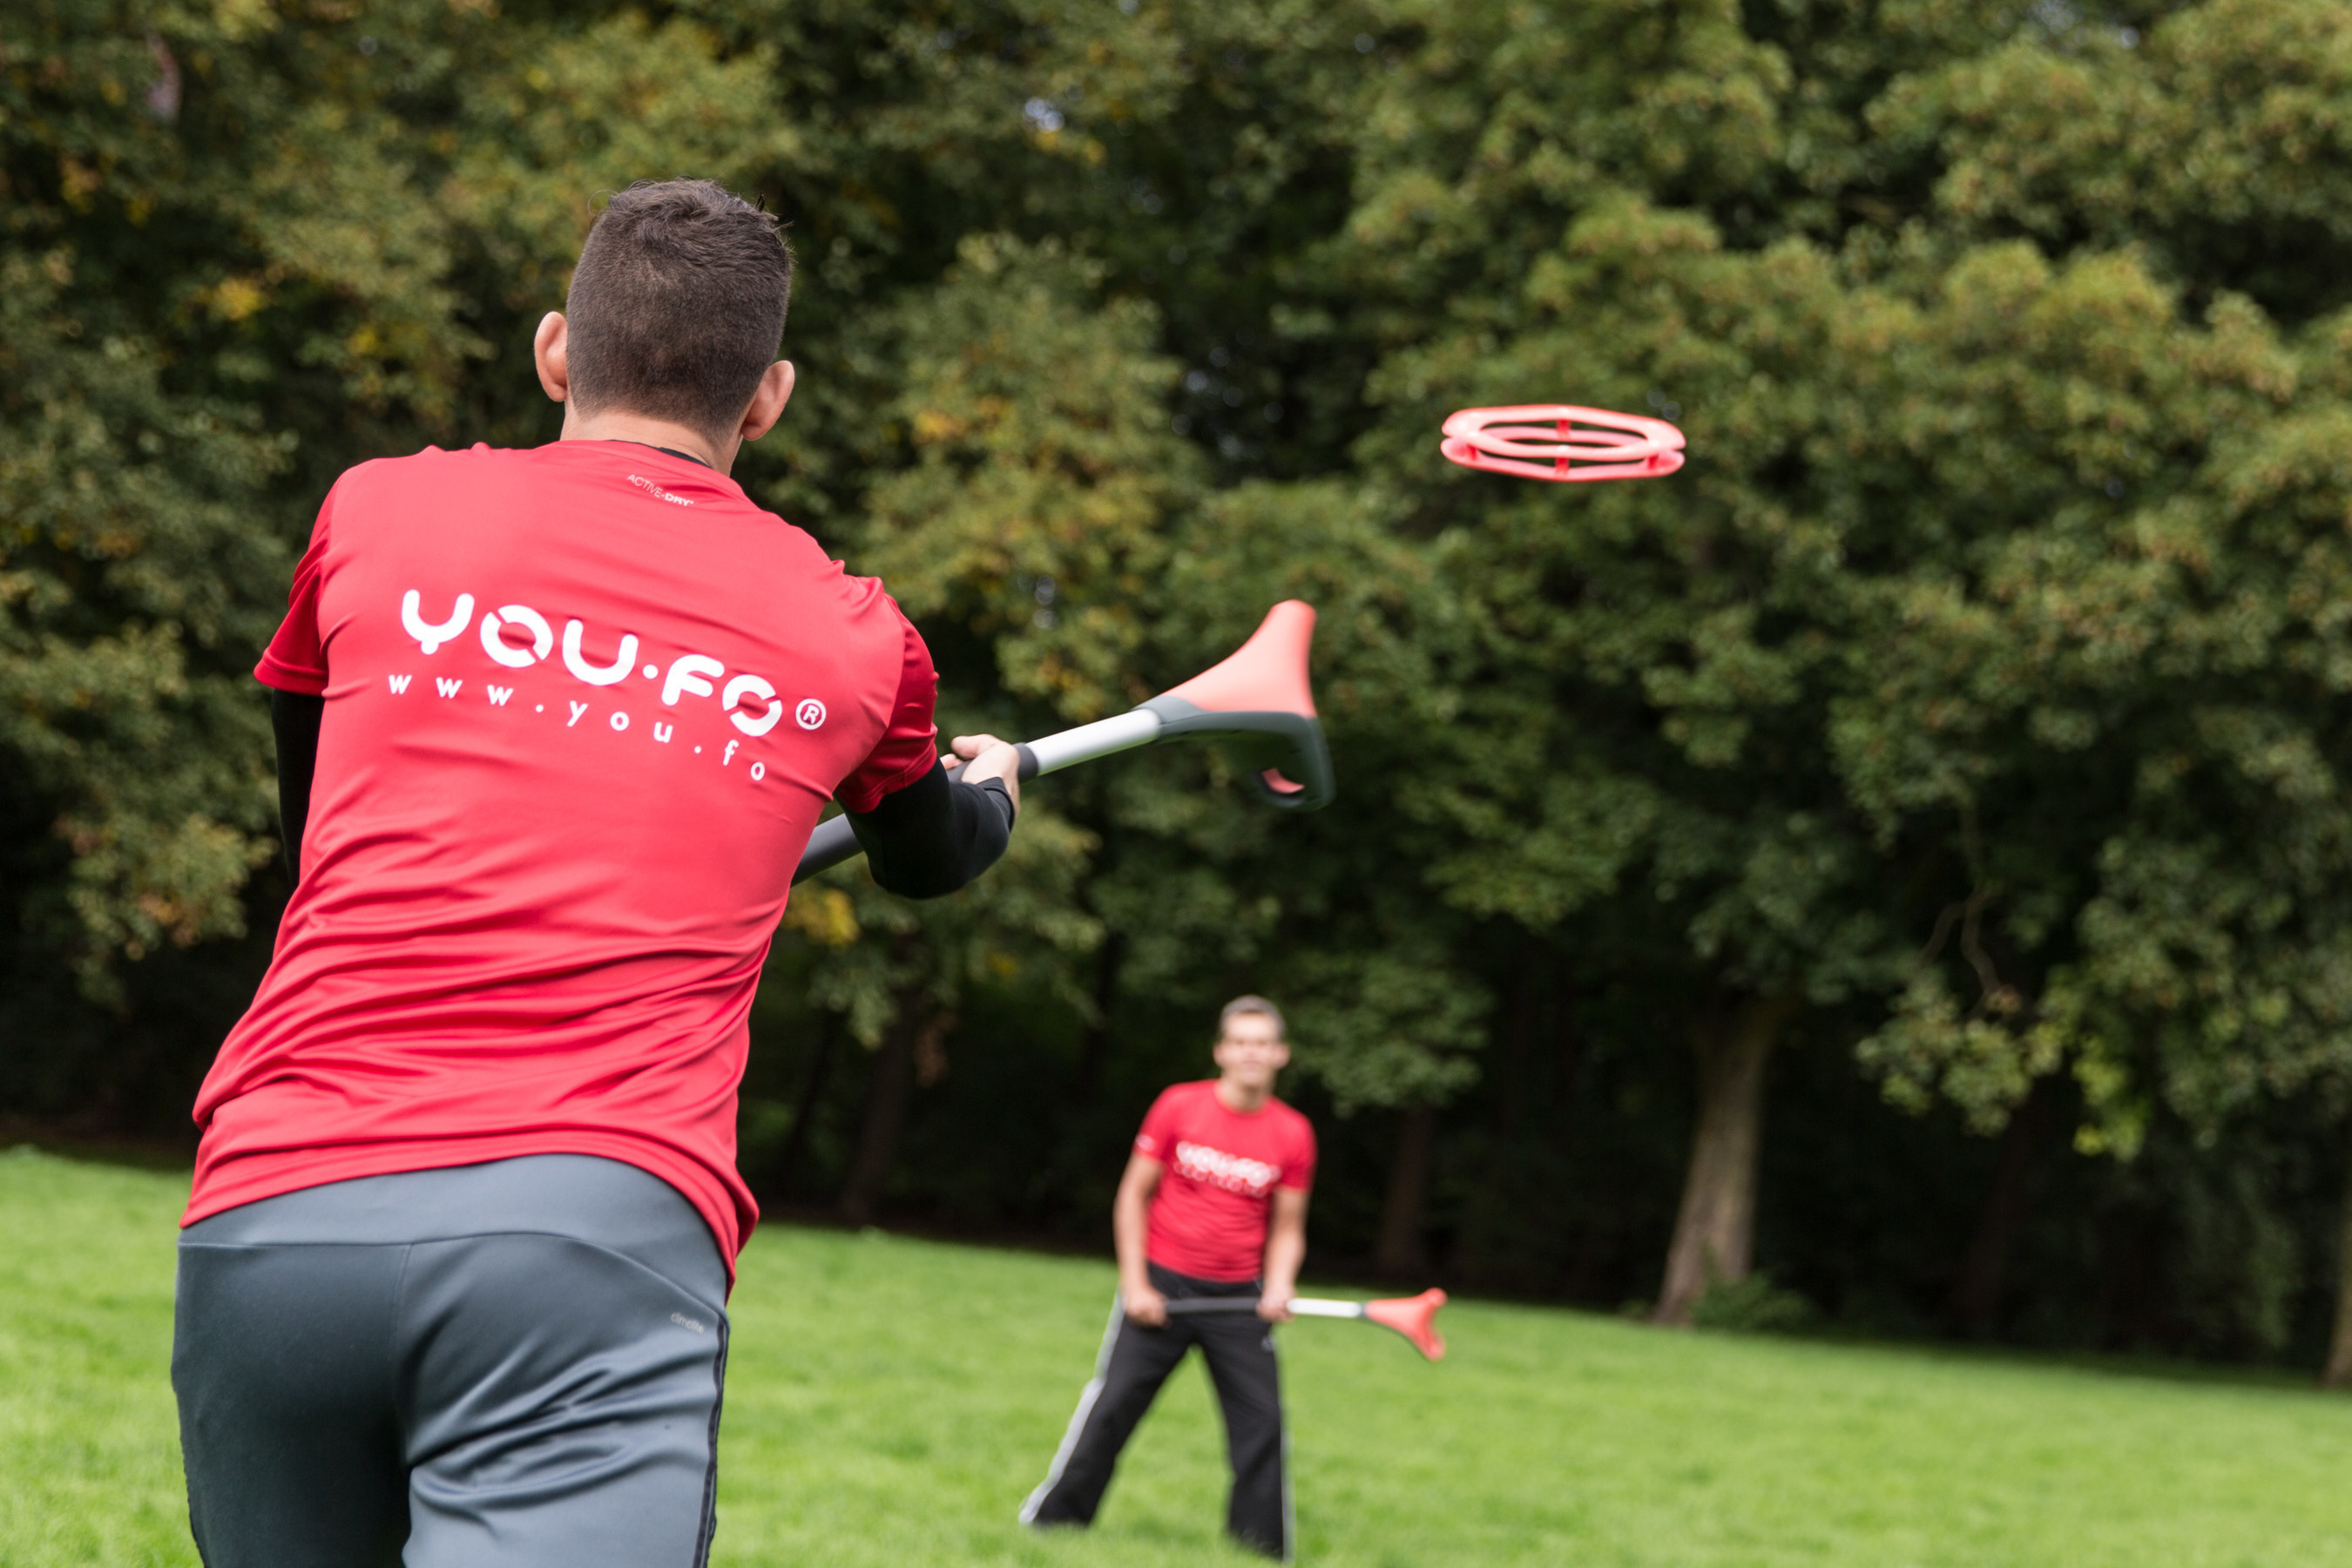 YOU.FO, a new sport that's a cross between lacrosse and frisbee.